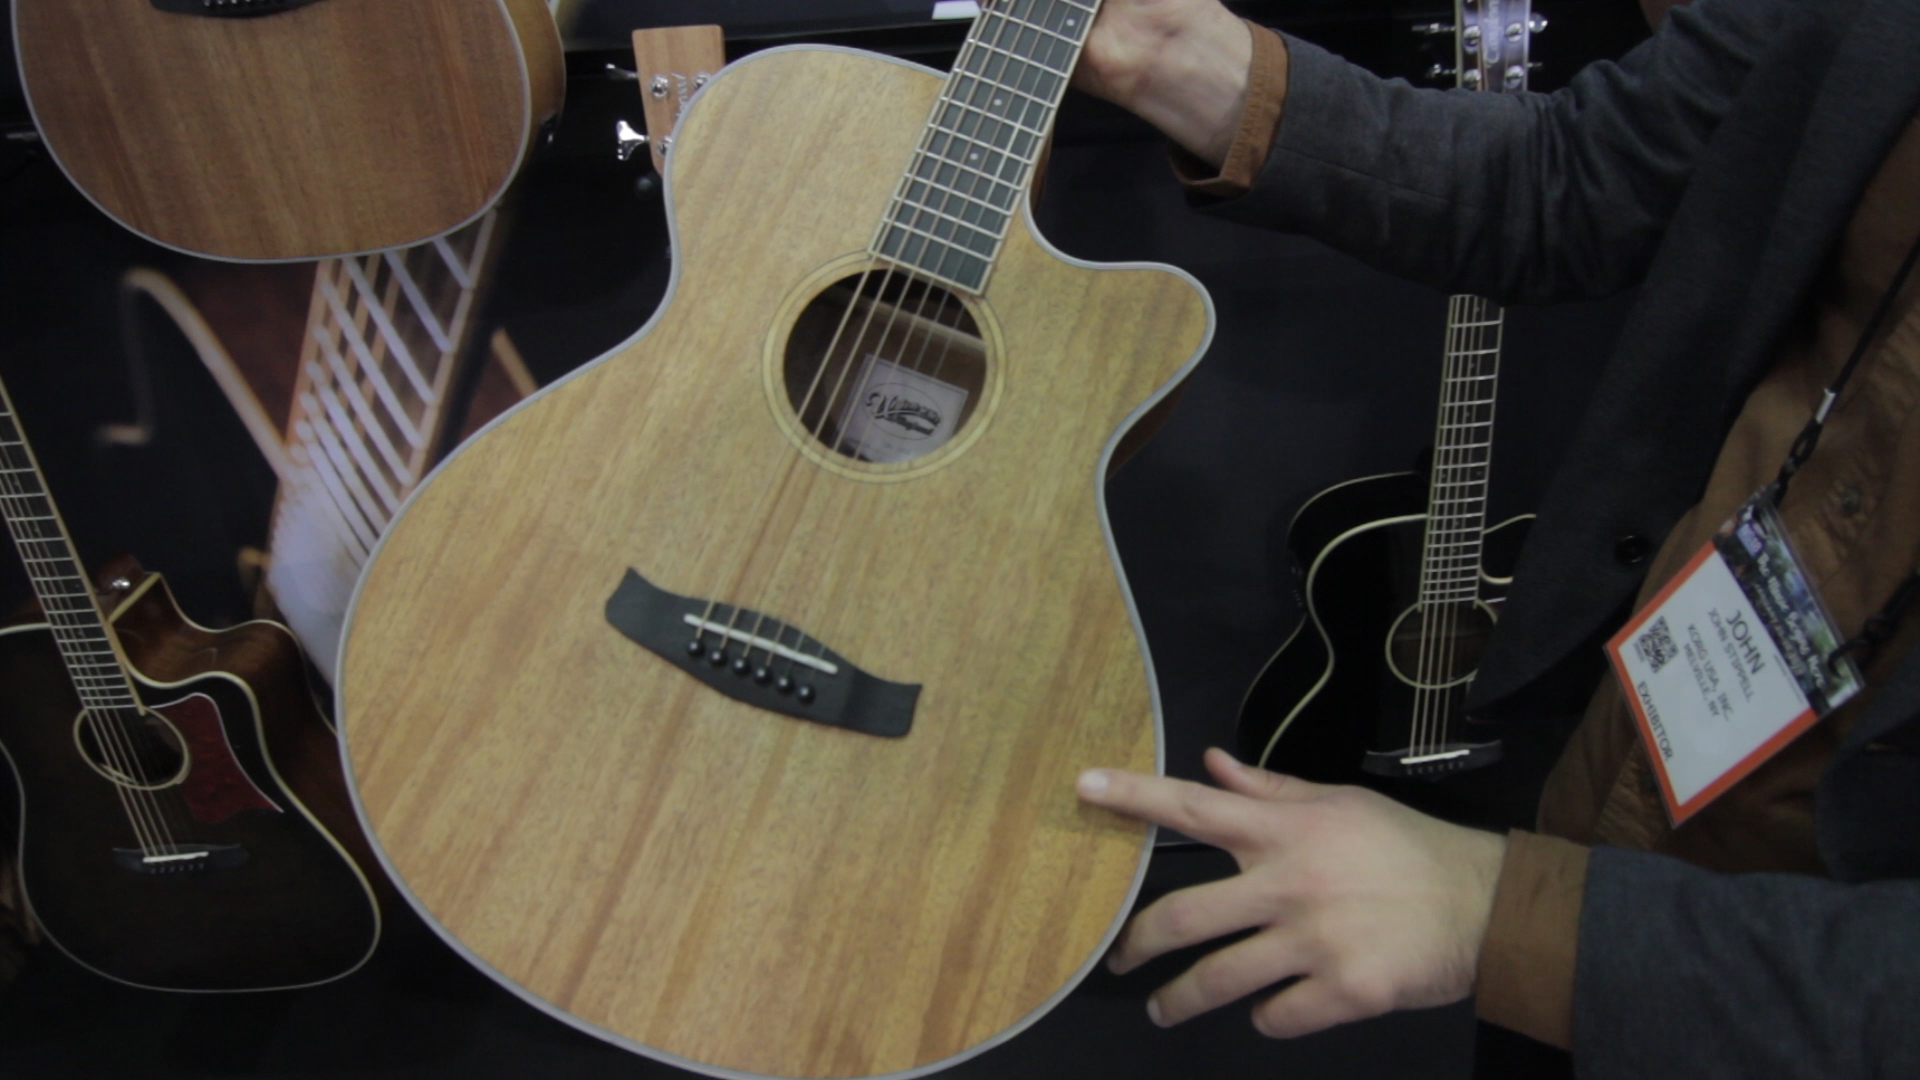 http://acousticguitar.com/tanglewood-debuts-union-series-solid-top-guitars-at-winter-namm-2018/